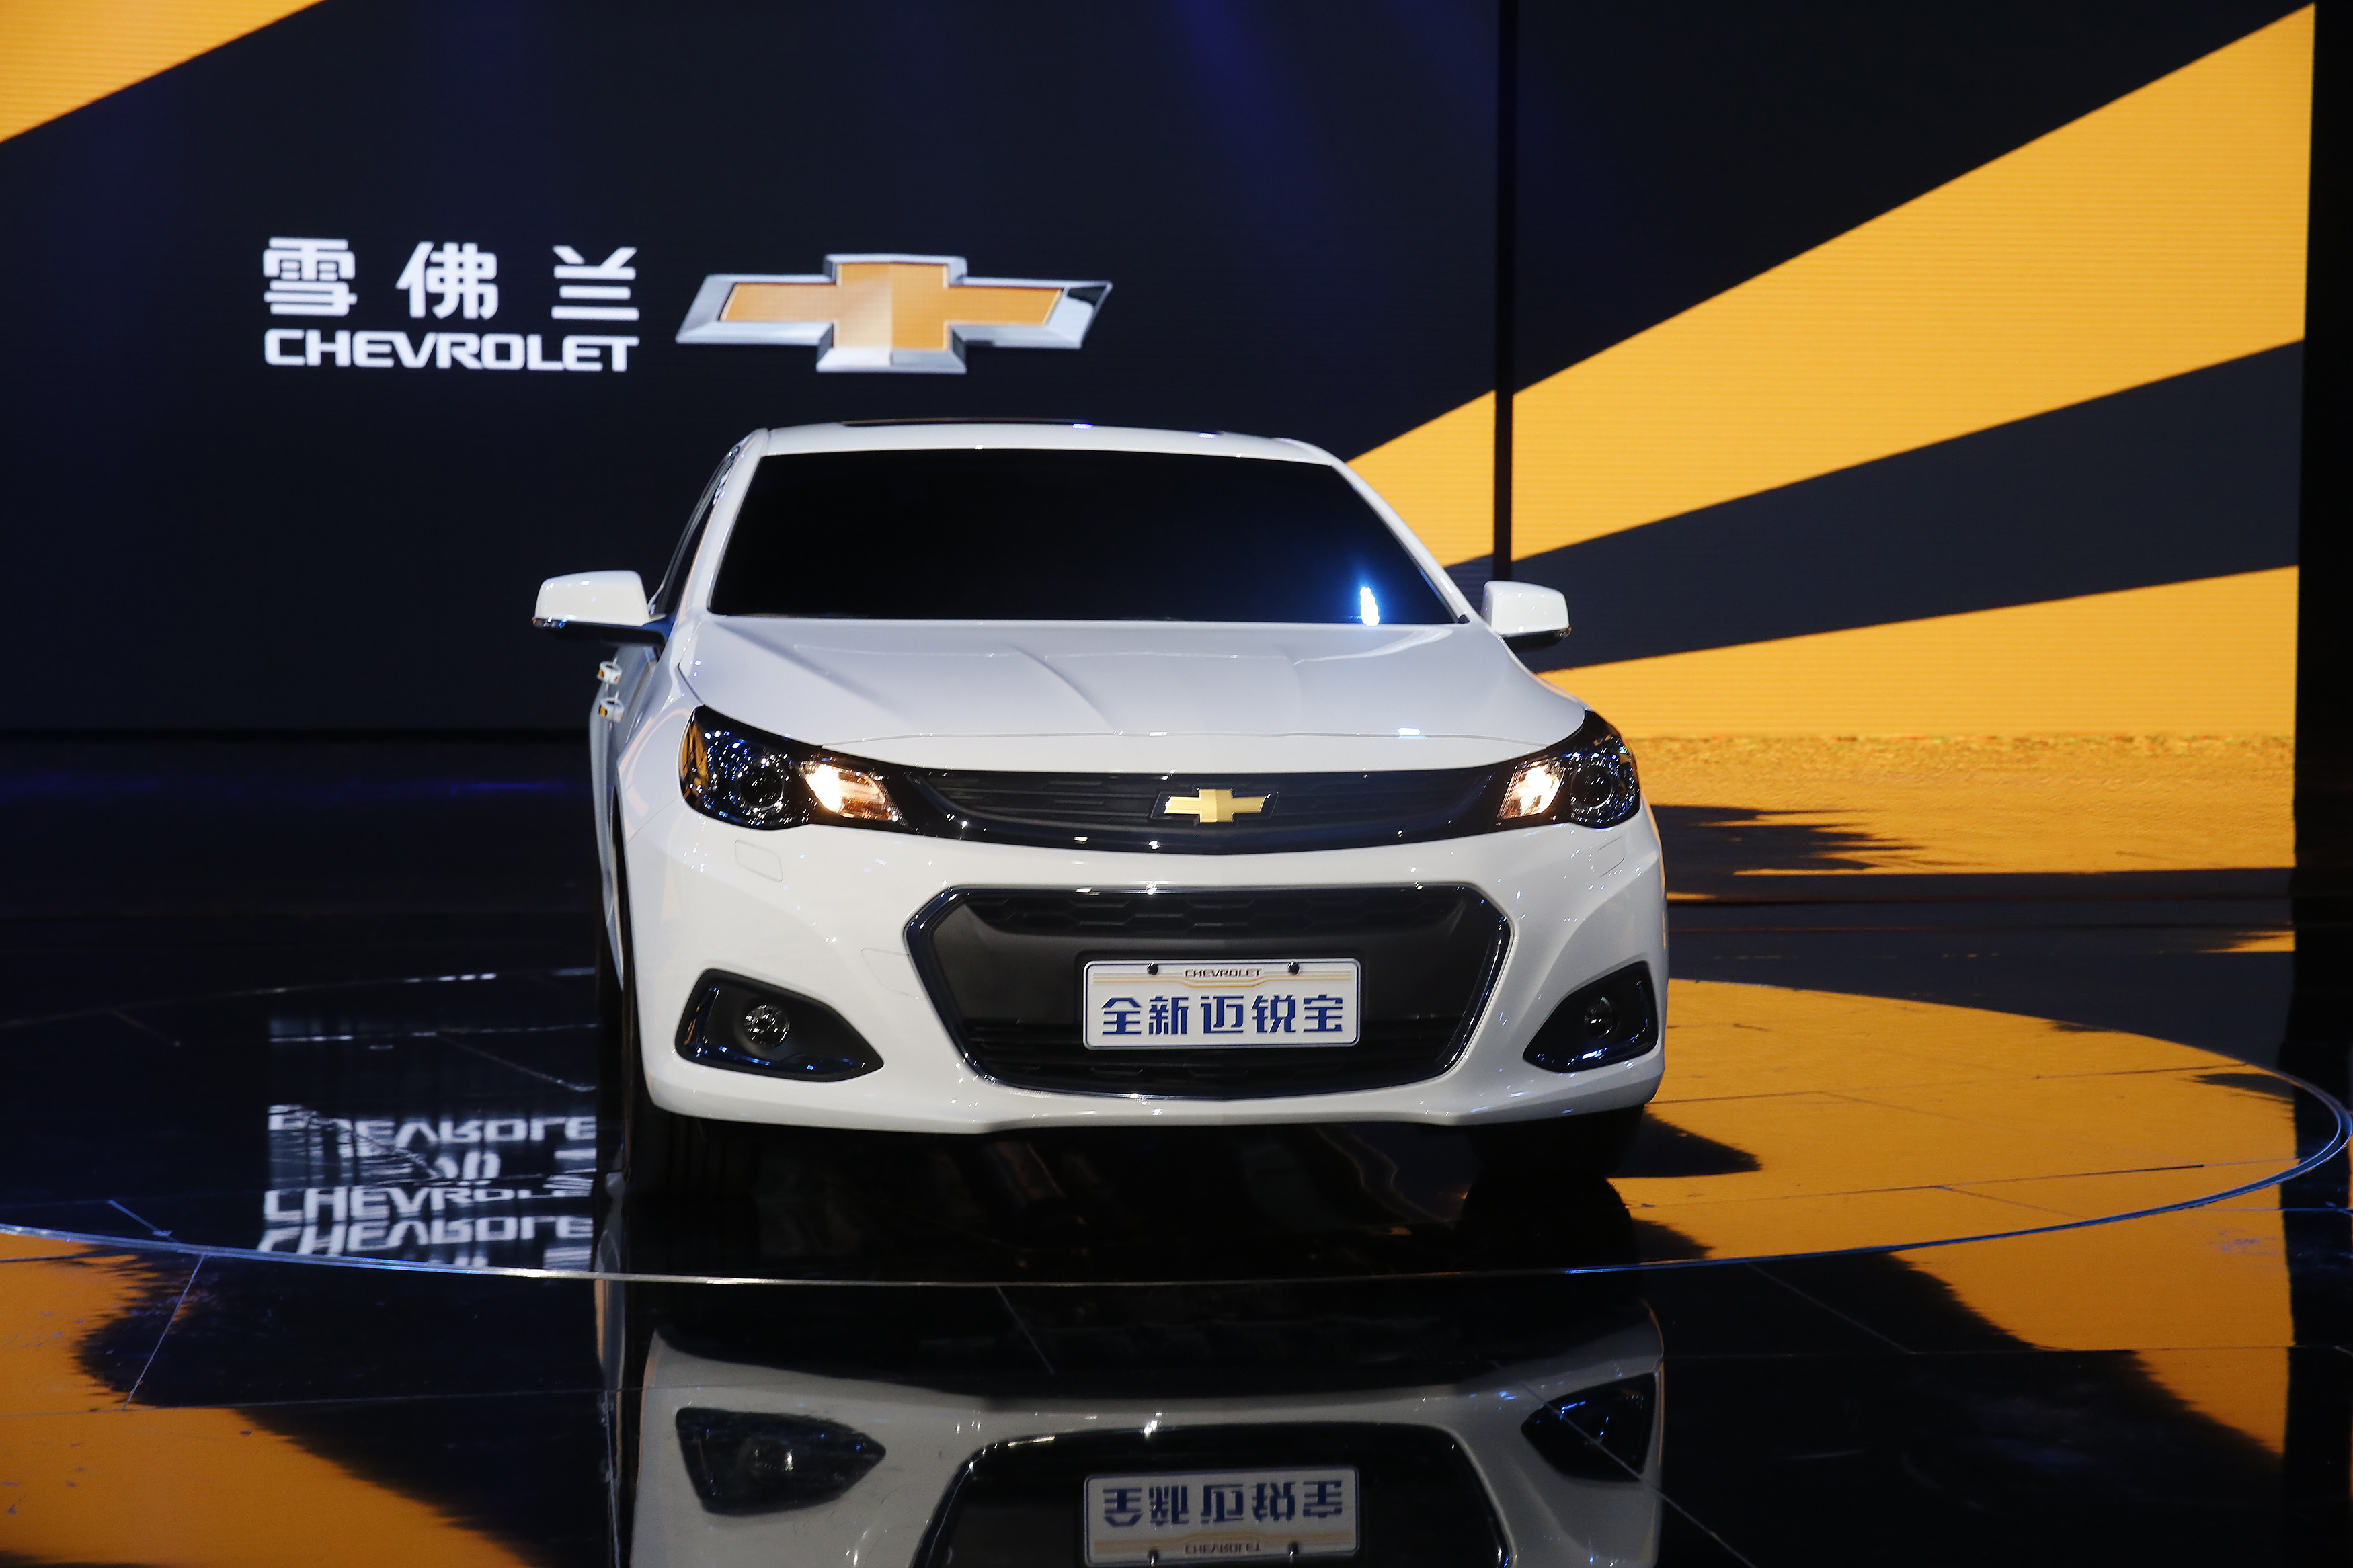 Chevrolet Fnr And All New Malibu Make Global Debut At The Electric Car Concept Shanghai Gm Gala Night